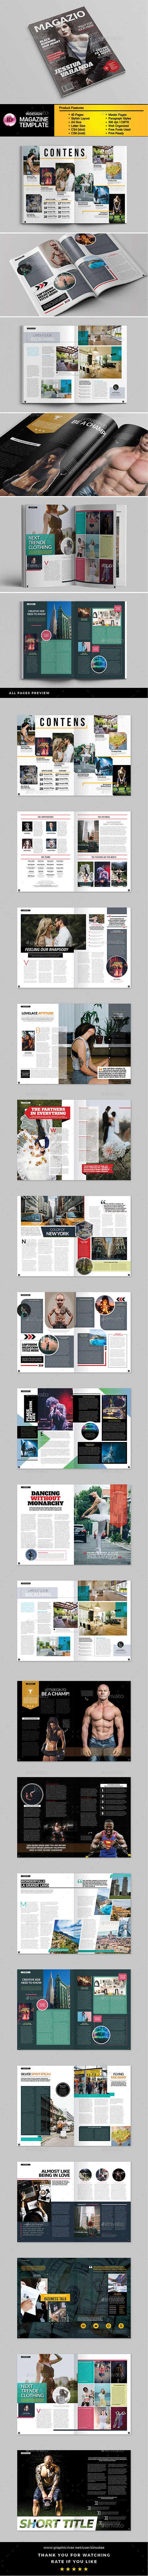 A4 Letter Magazine Template Vol.2 - Magazines Print Templates